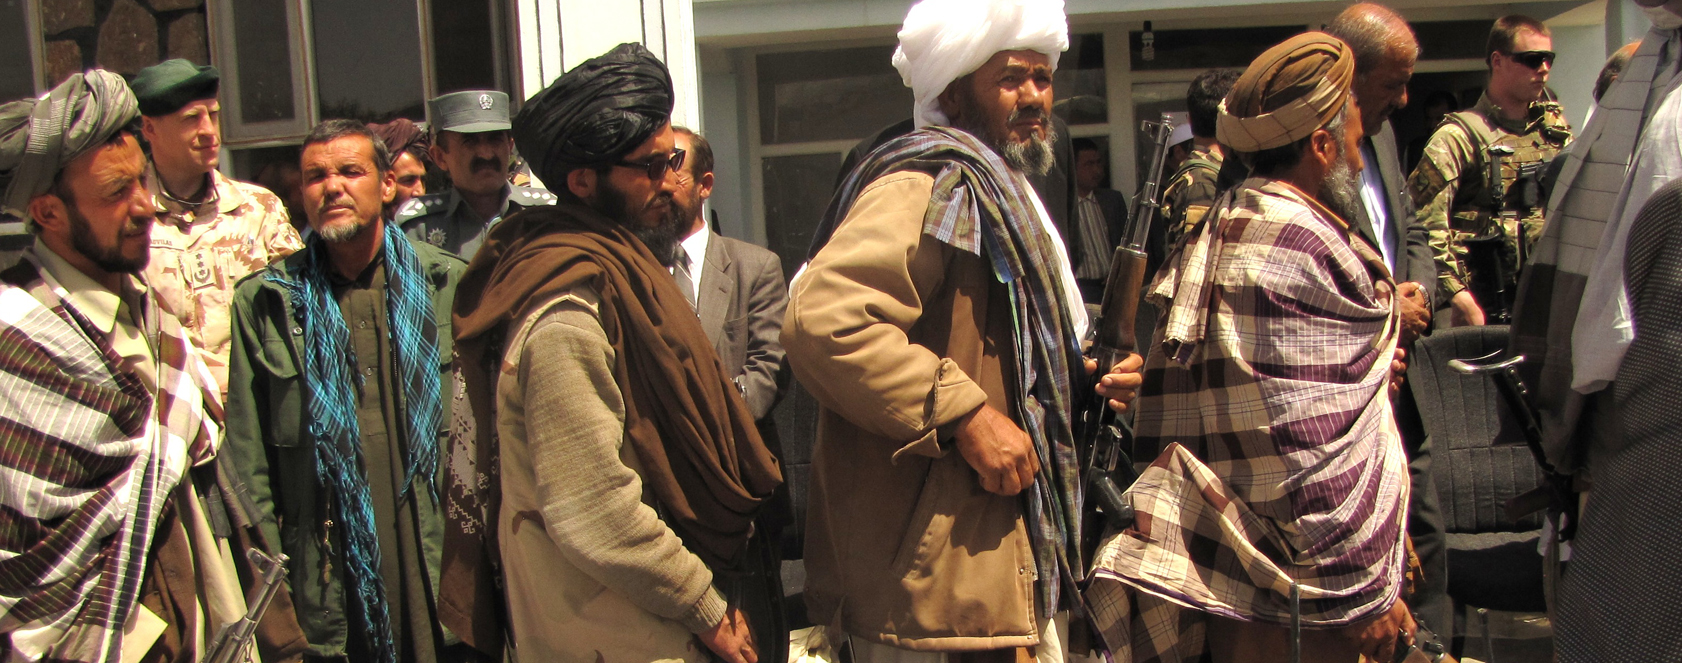 Taliban | Counter Extremism Project